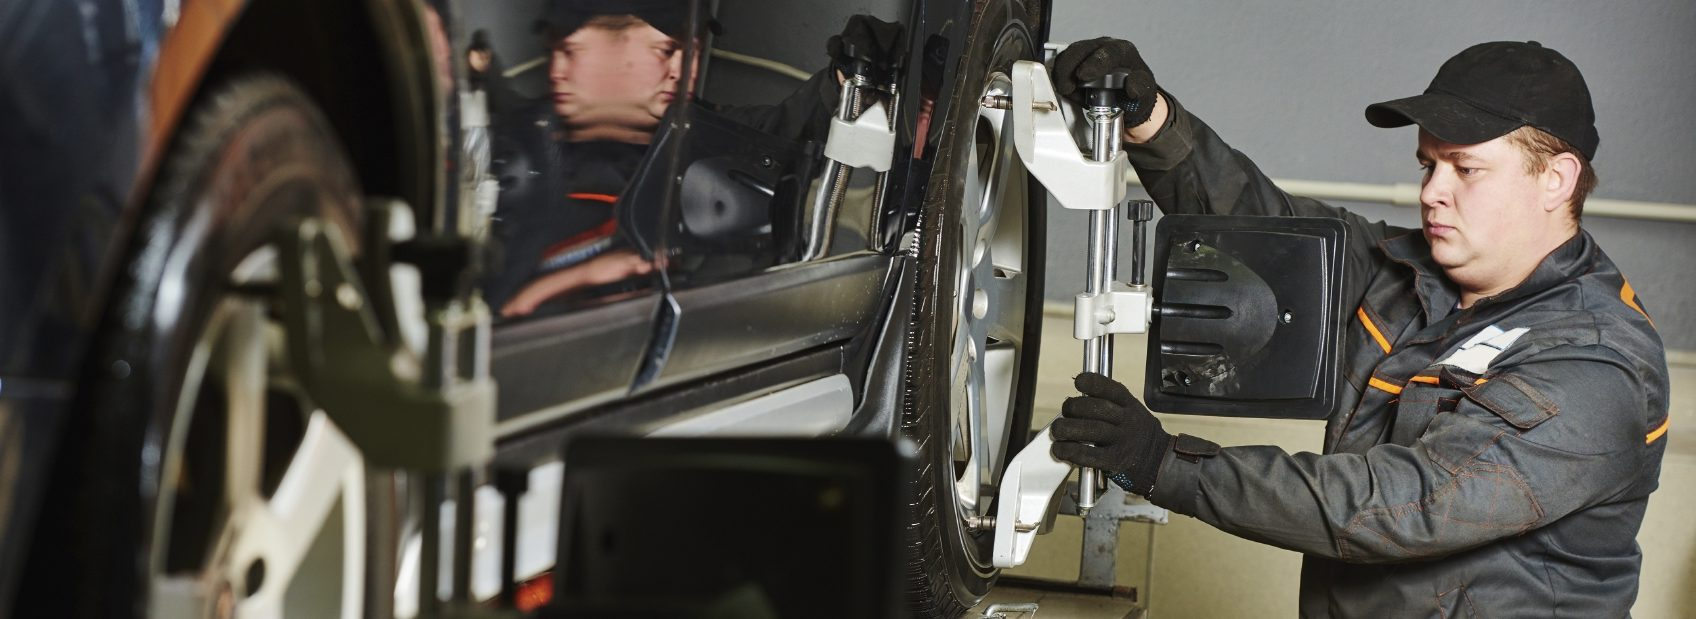 Have your VW taken in for an alignment